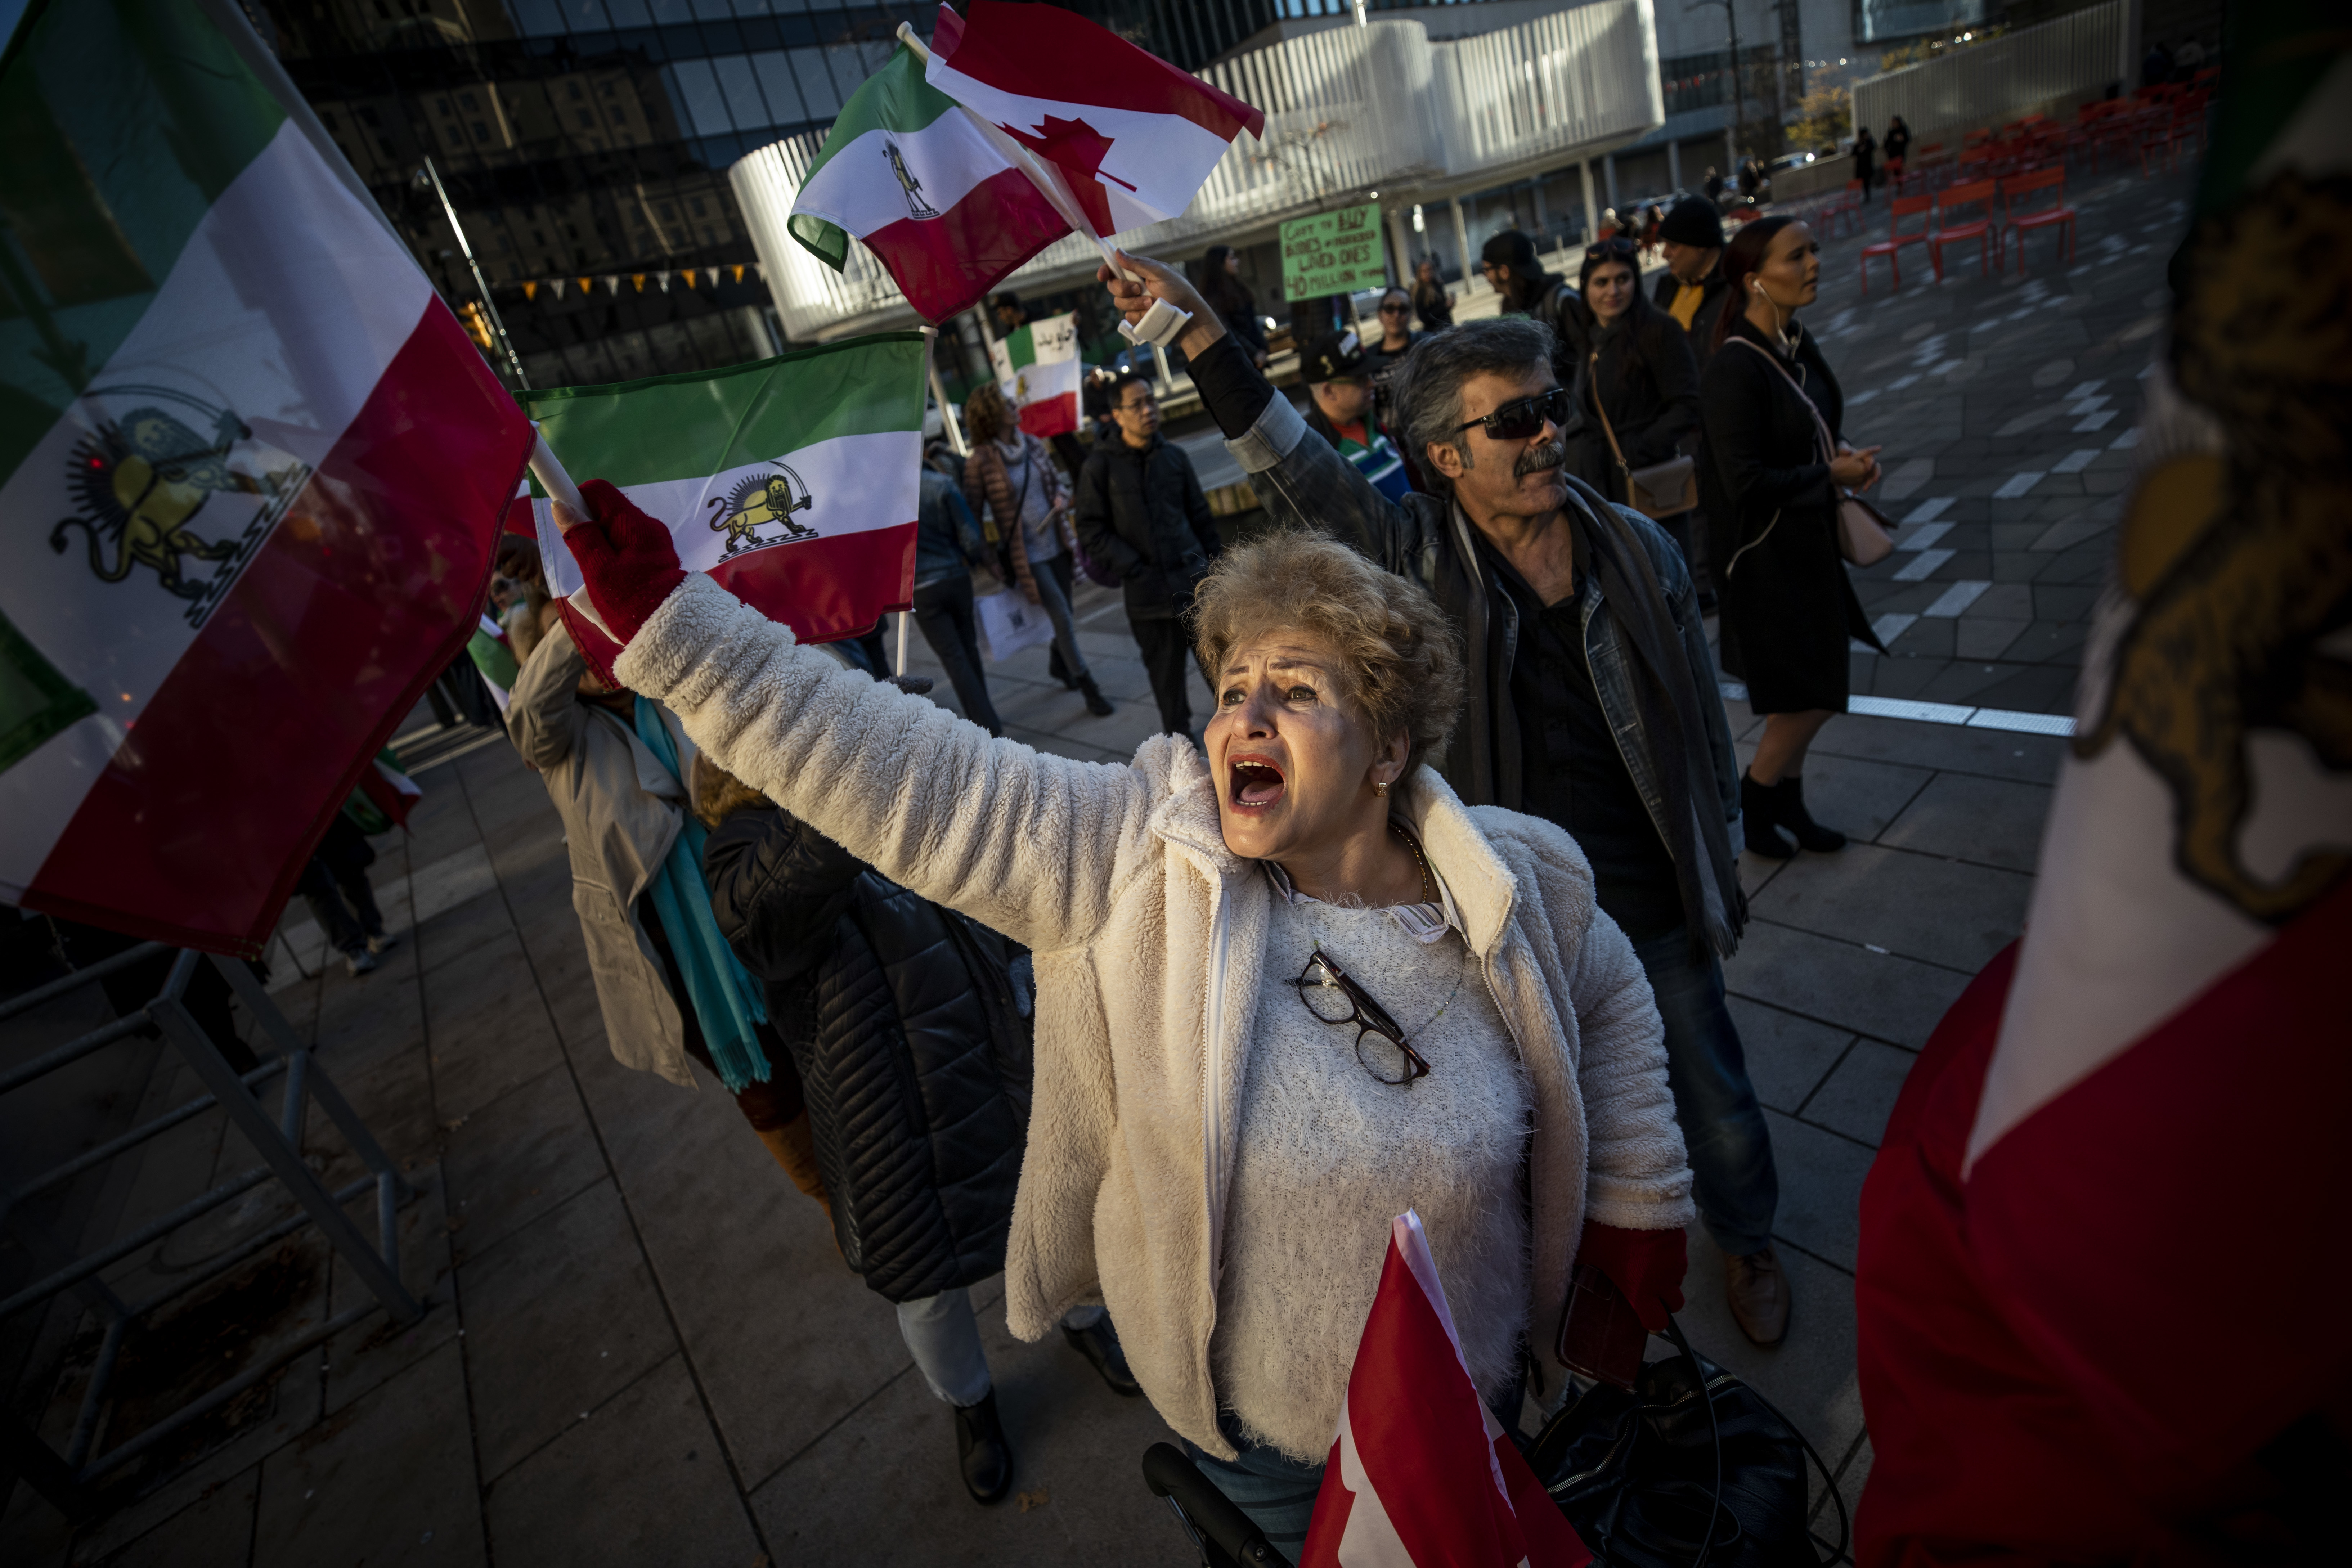 Supporters of a democratic Iran protest on the streets of downtown Vancouver on Nov. 21, 2019. (Ben Nelms/CBC)